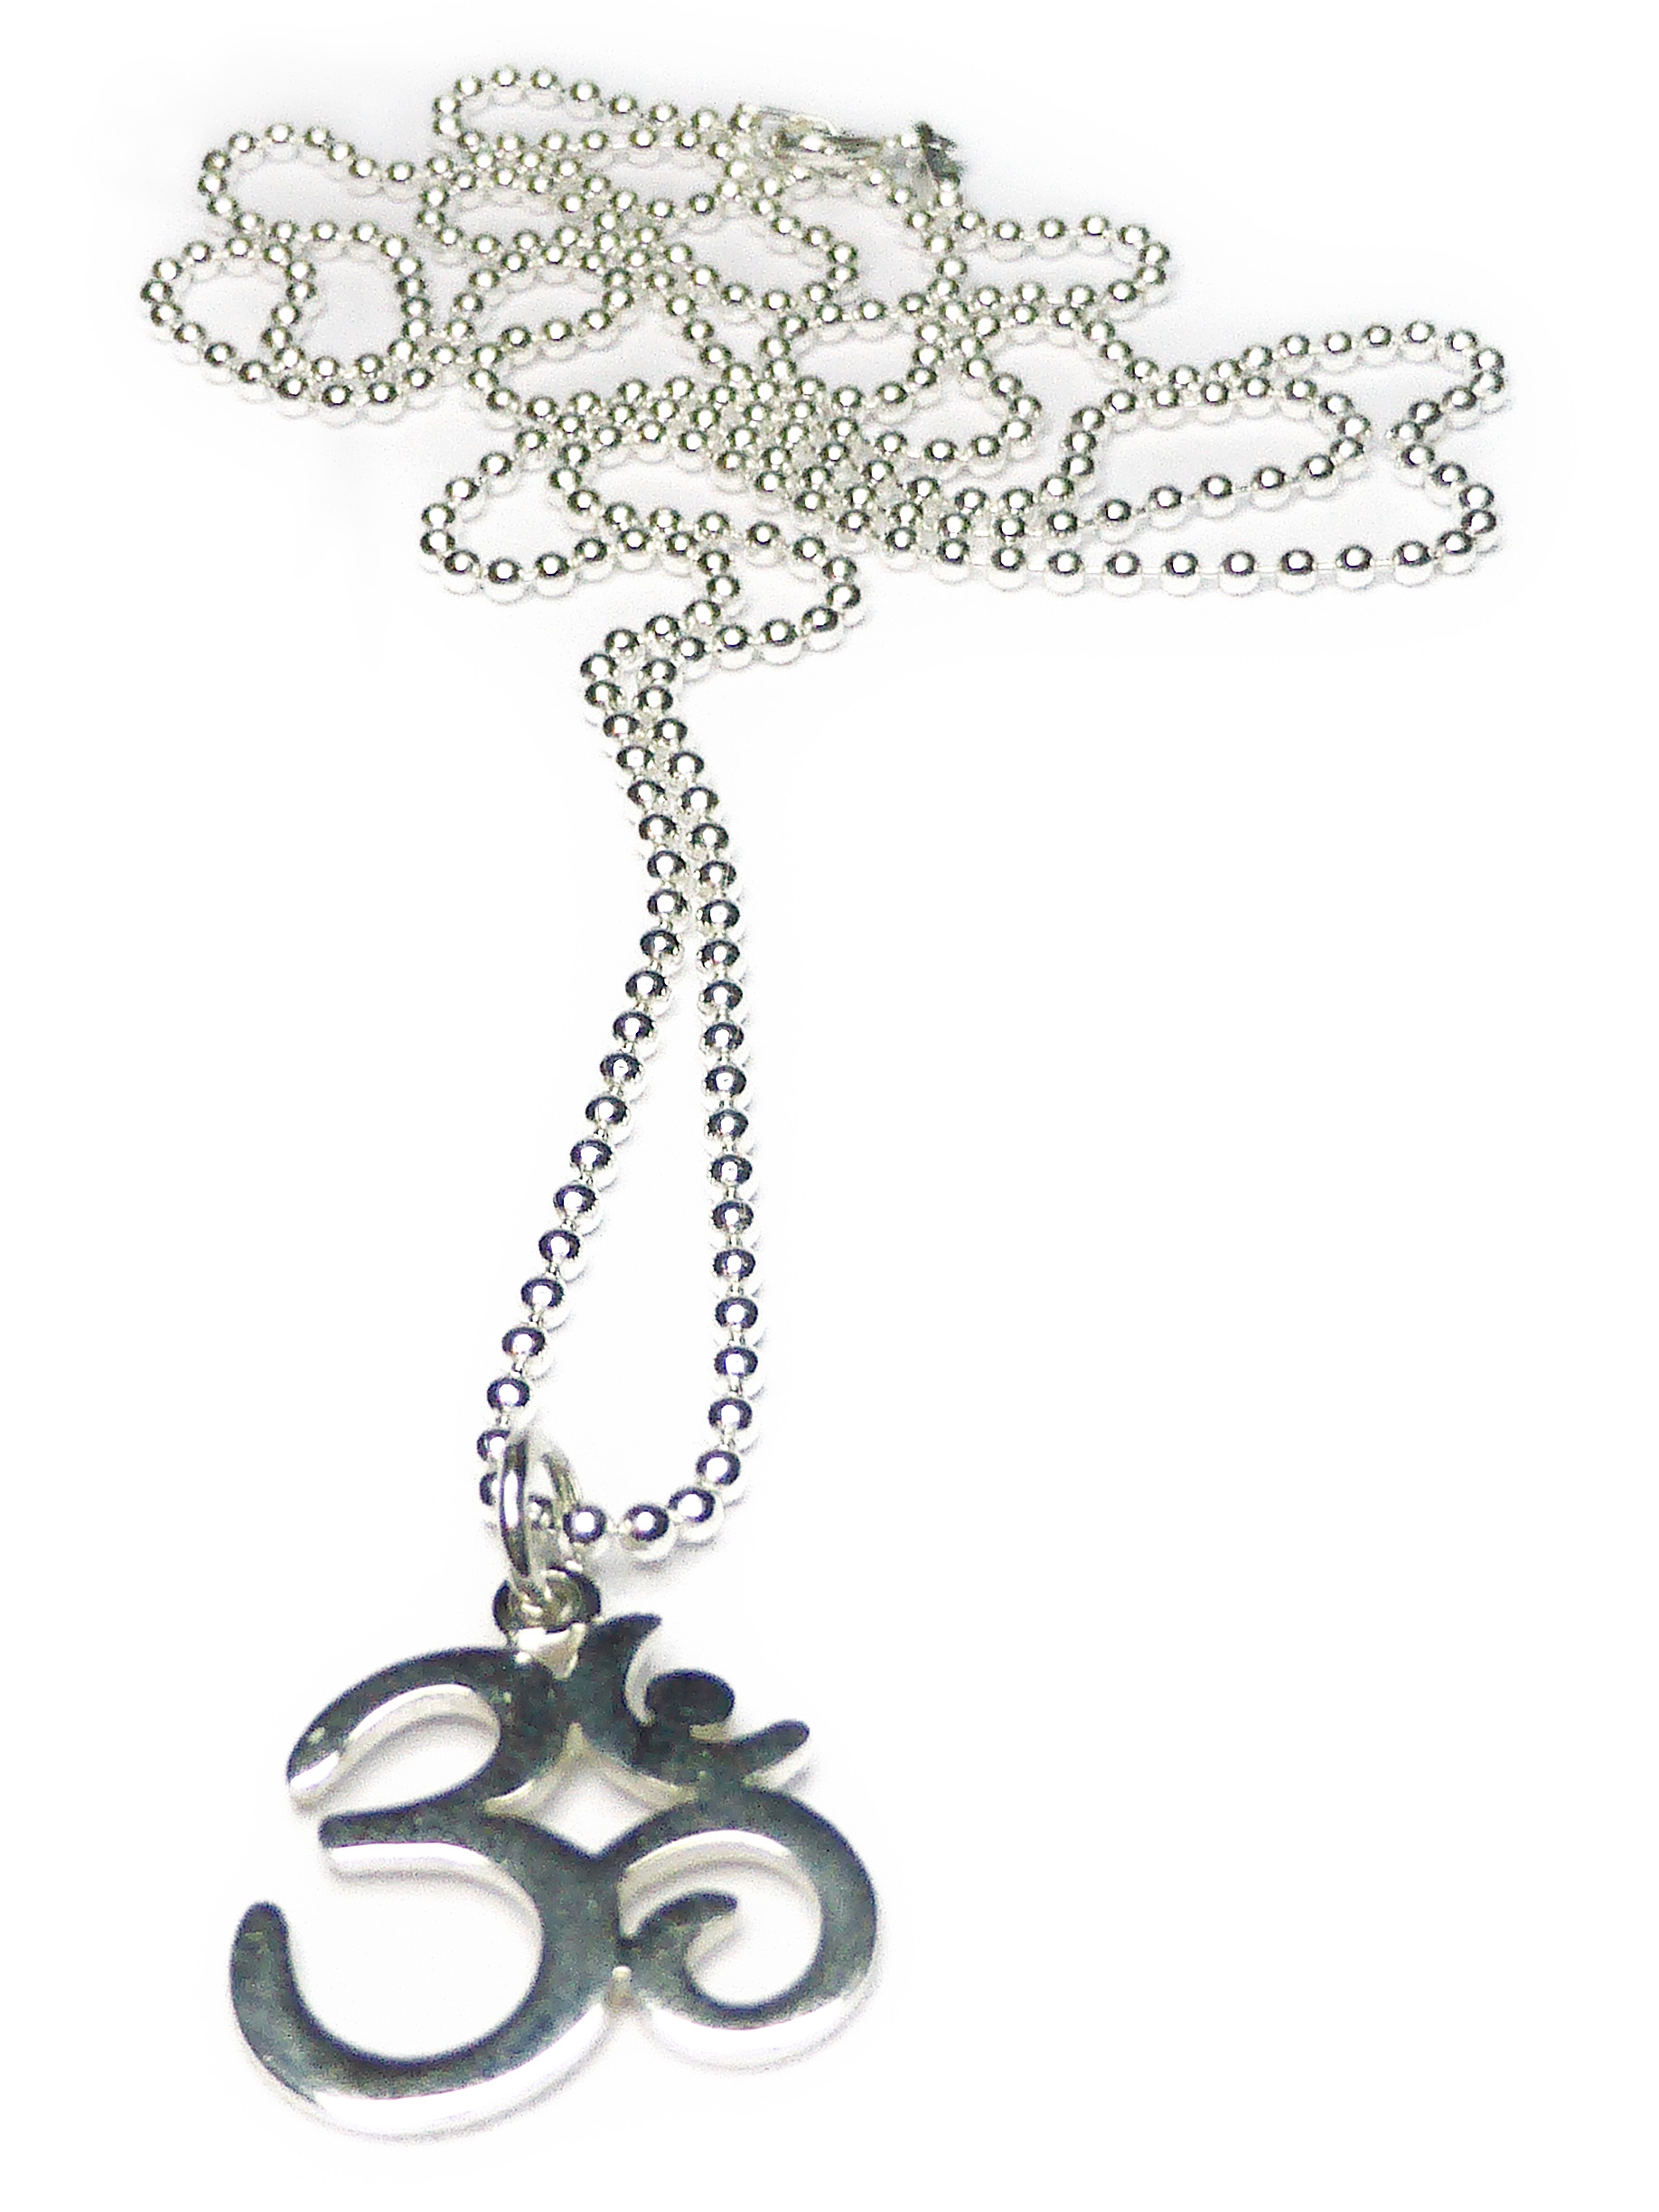 Ohm Ball Chain Pendant from Jaciy & Jools Summer Fling Collection